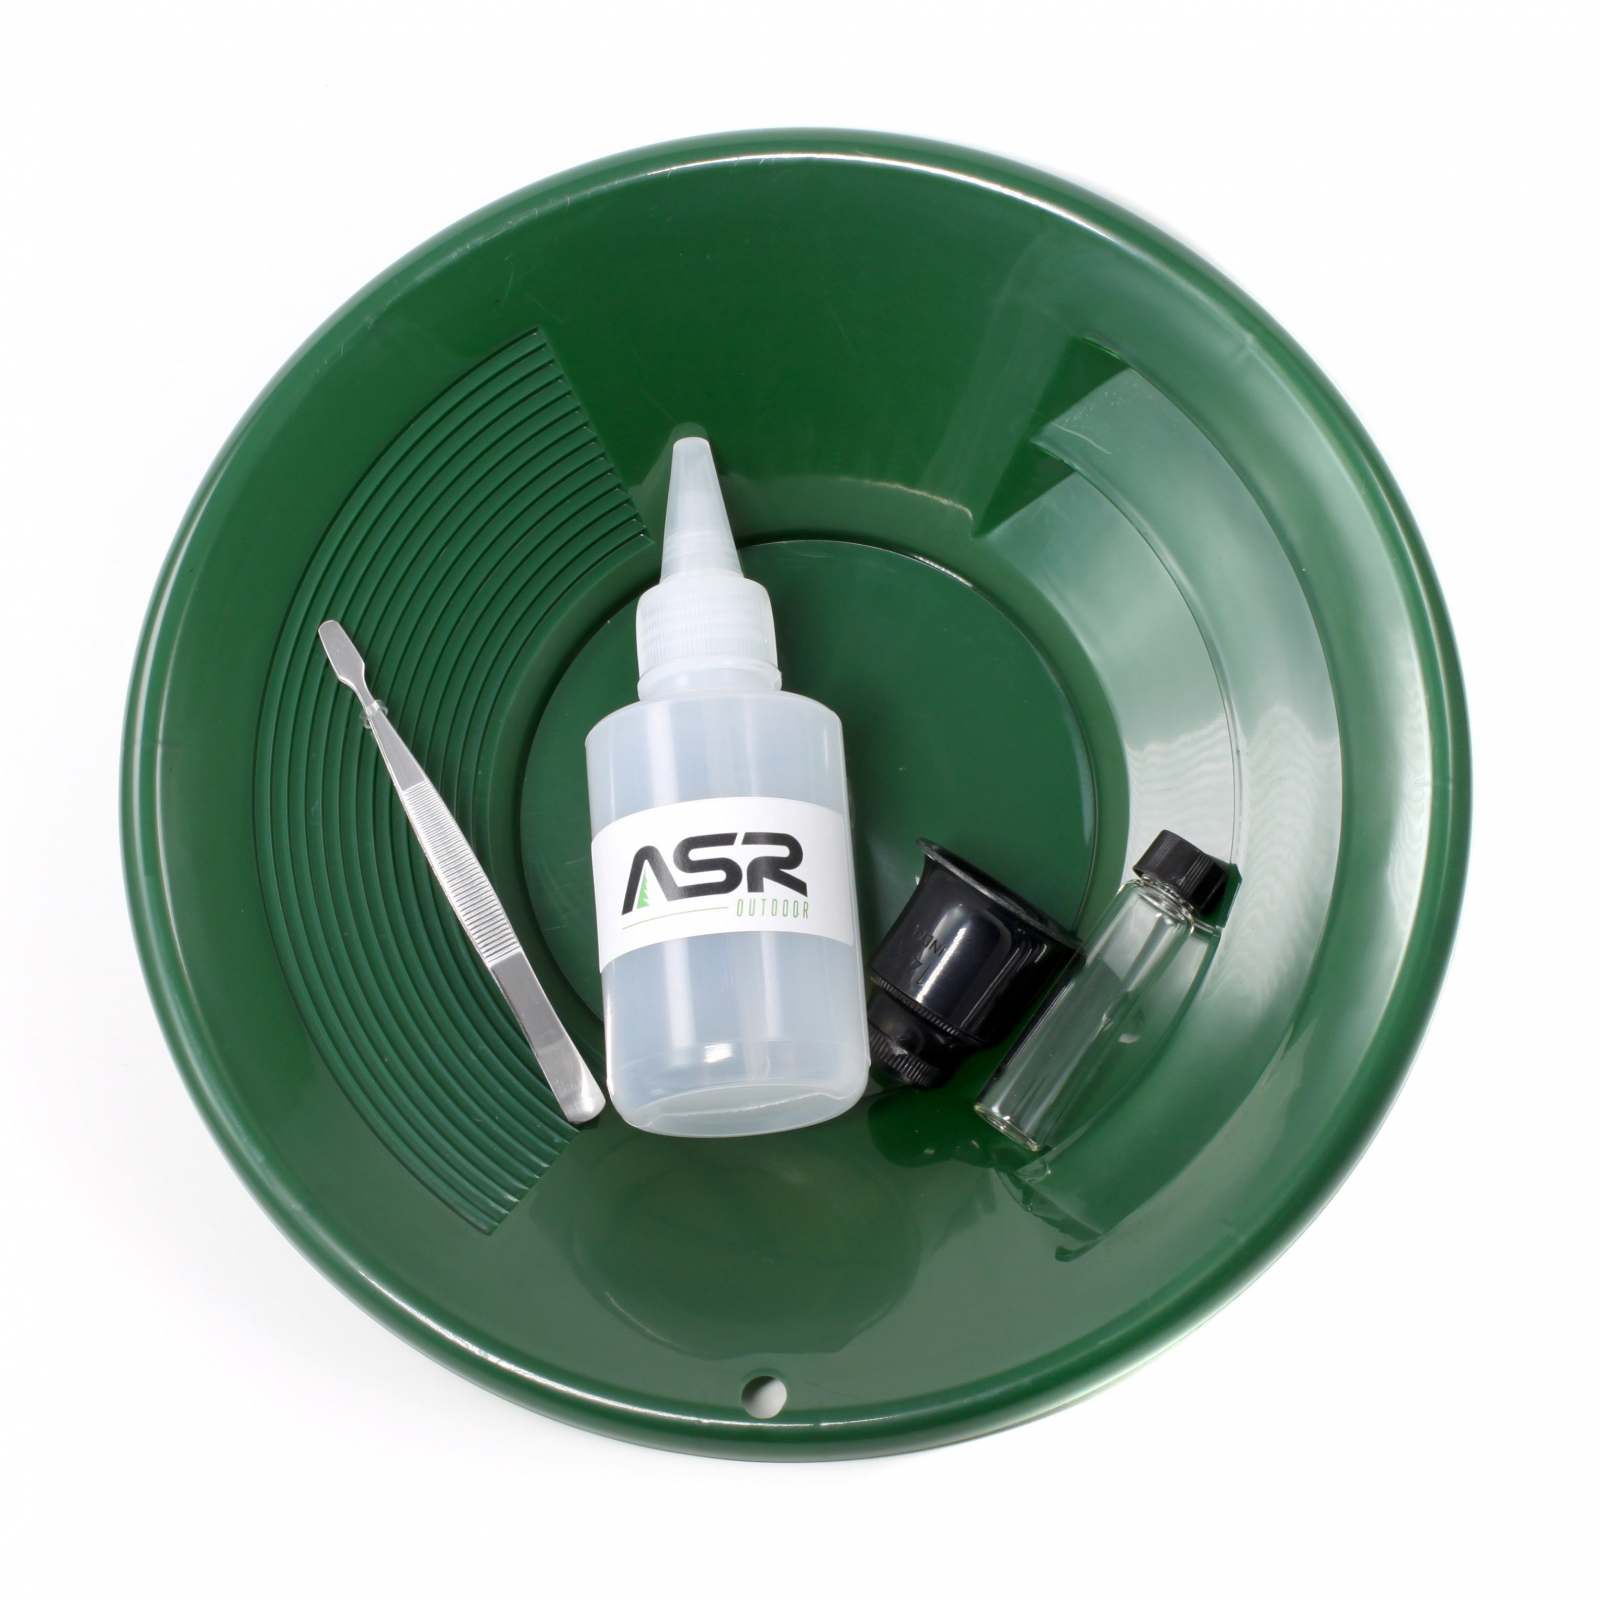 ASR Outdoor Gold Rush Gold Prospecting Kit Classifiers Vials Sifting Pans - 5pc